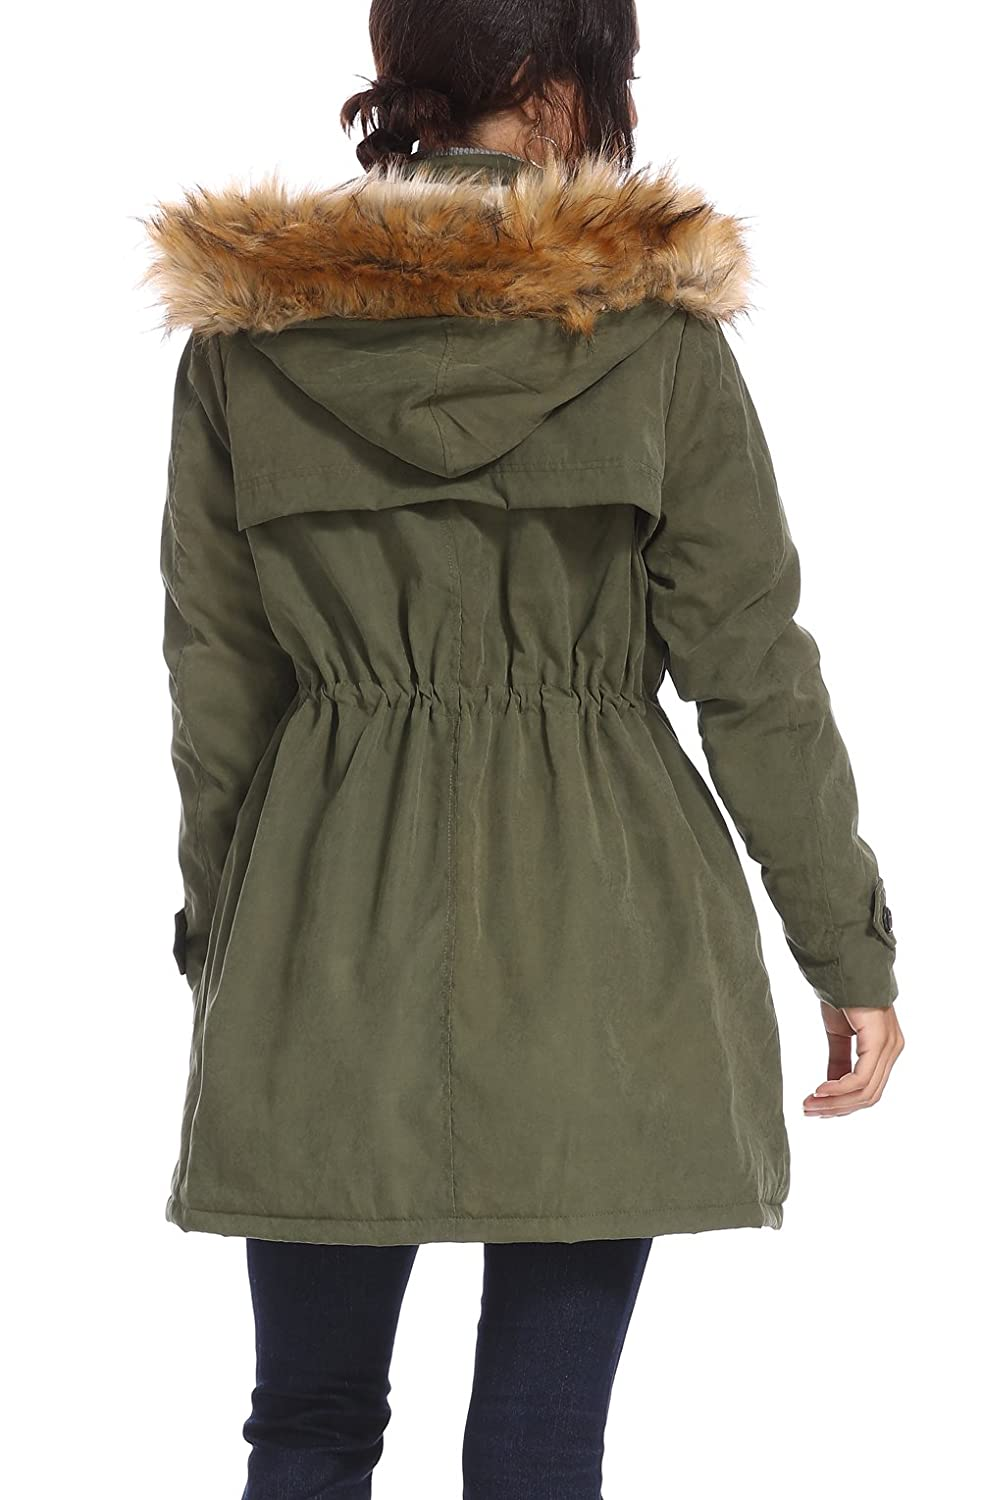 kooosin Womens Thickened Parka Coat with Removable Fur Hood Warm Coats Parkas with Faux Fur Jackets